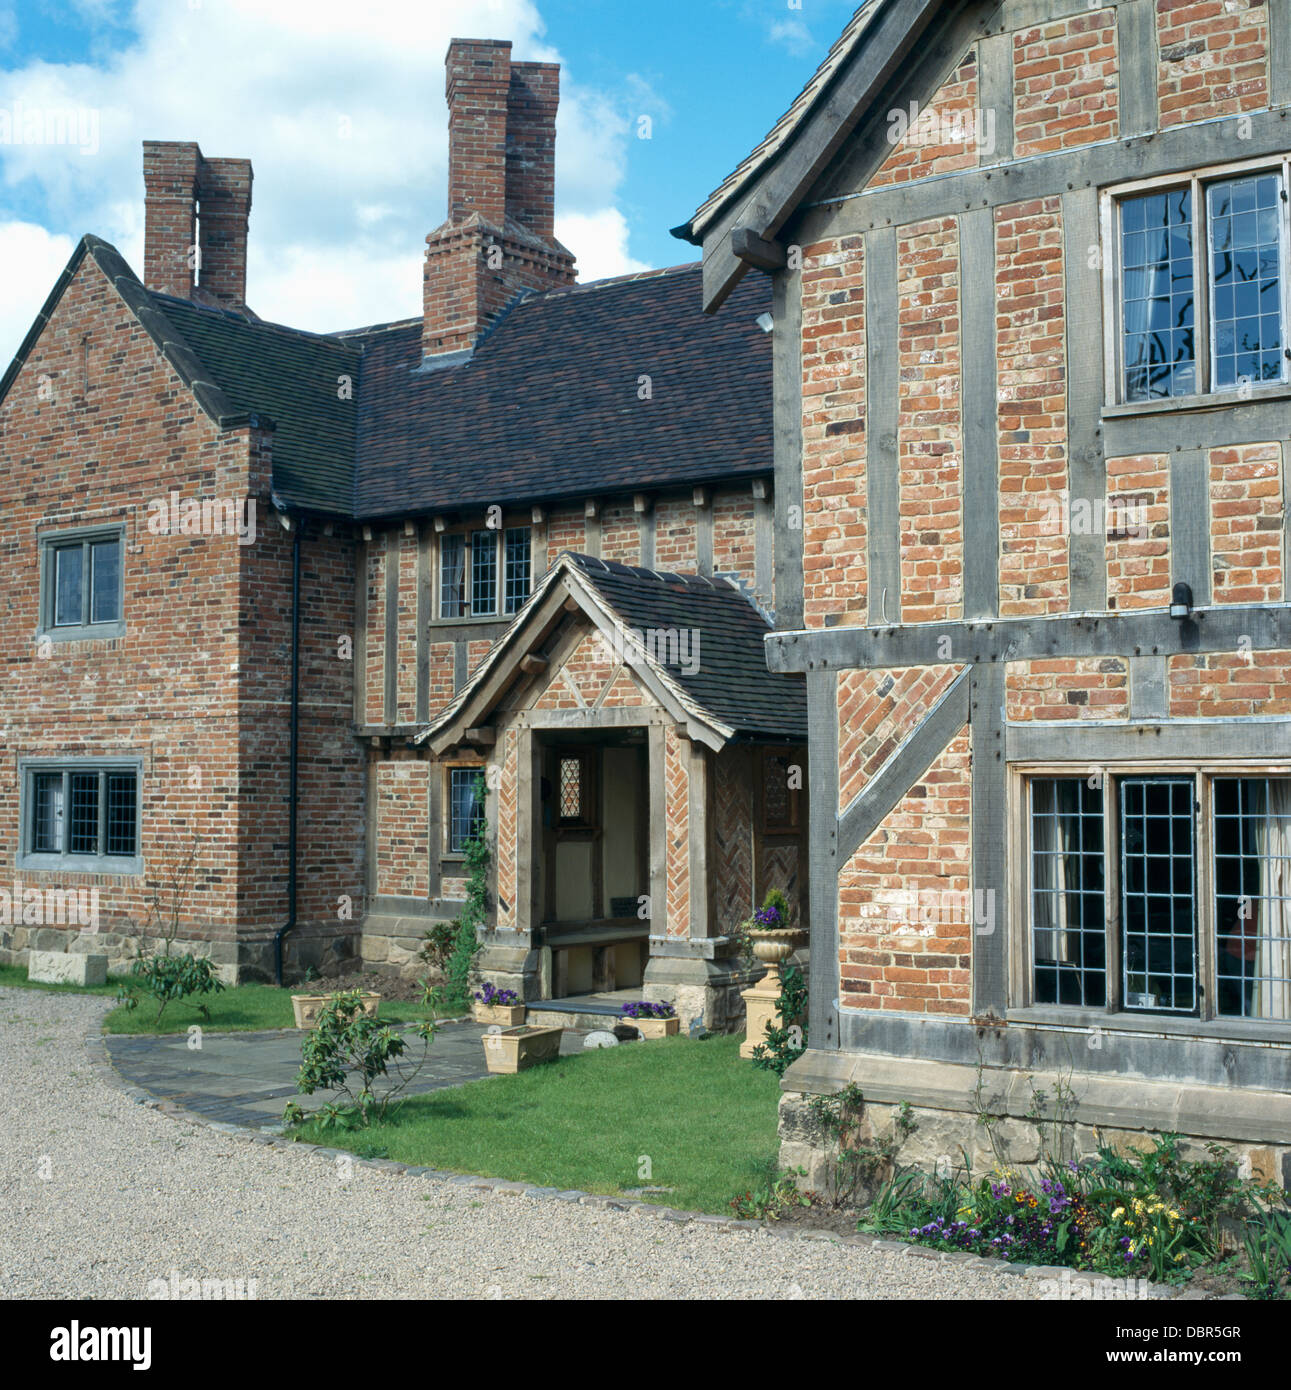 Large, New-build, Tudor-style Country House With Brick